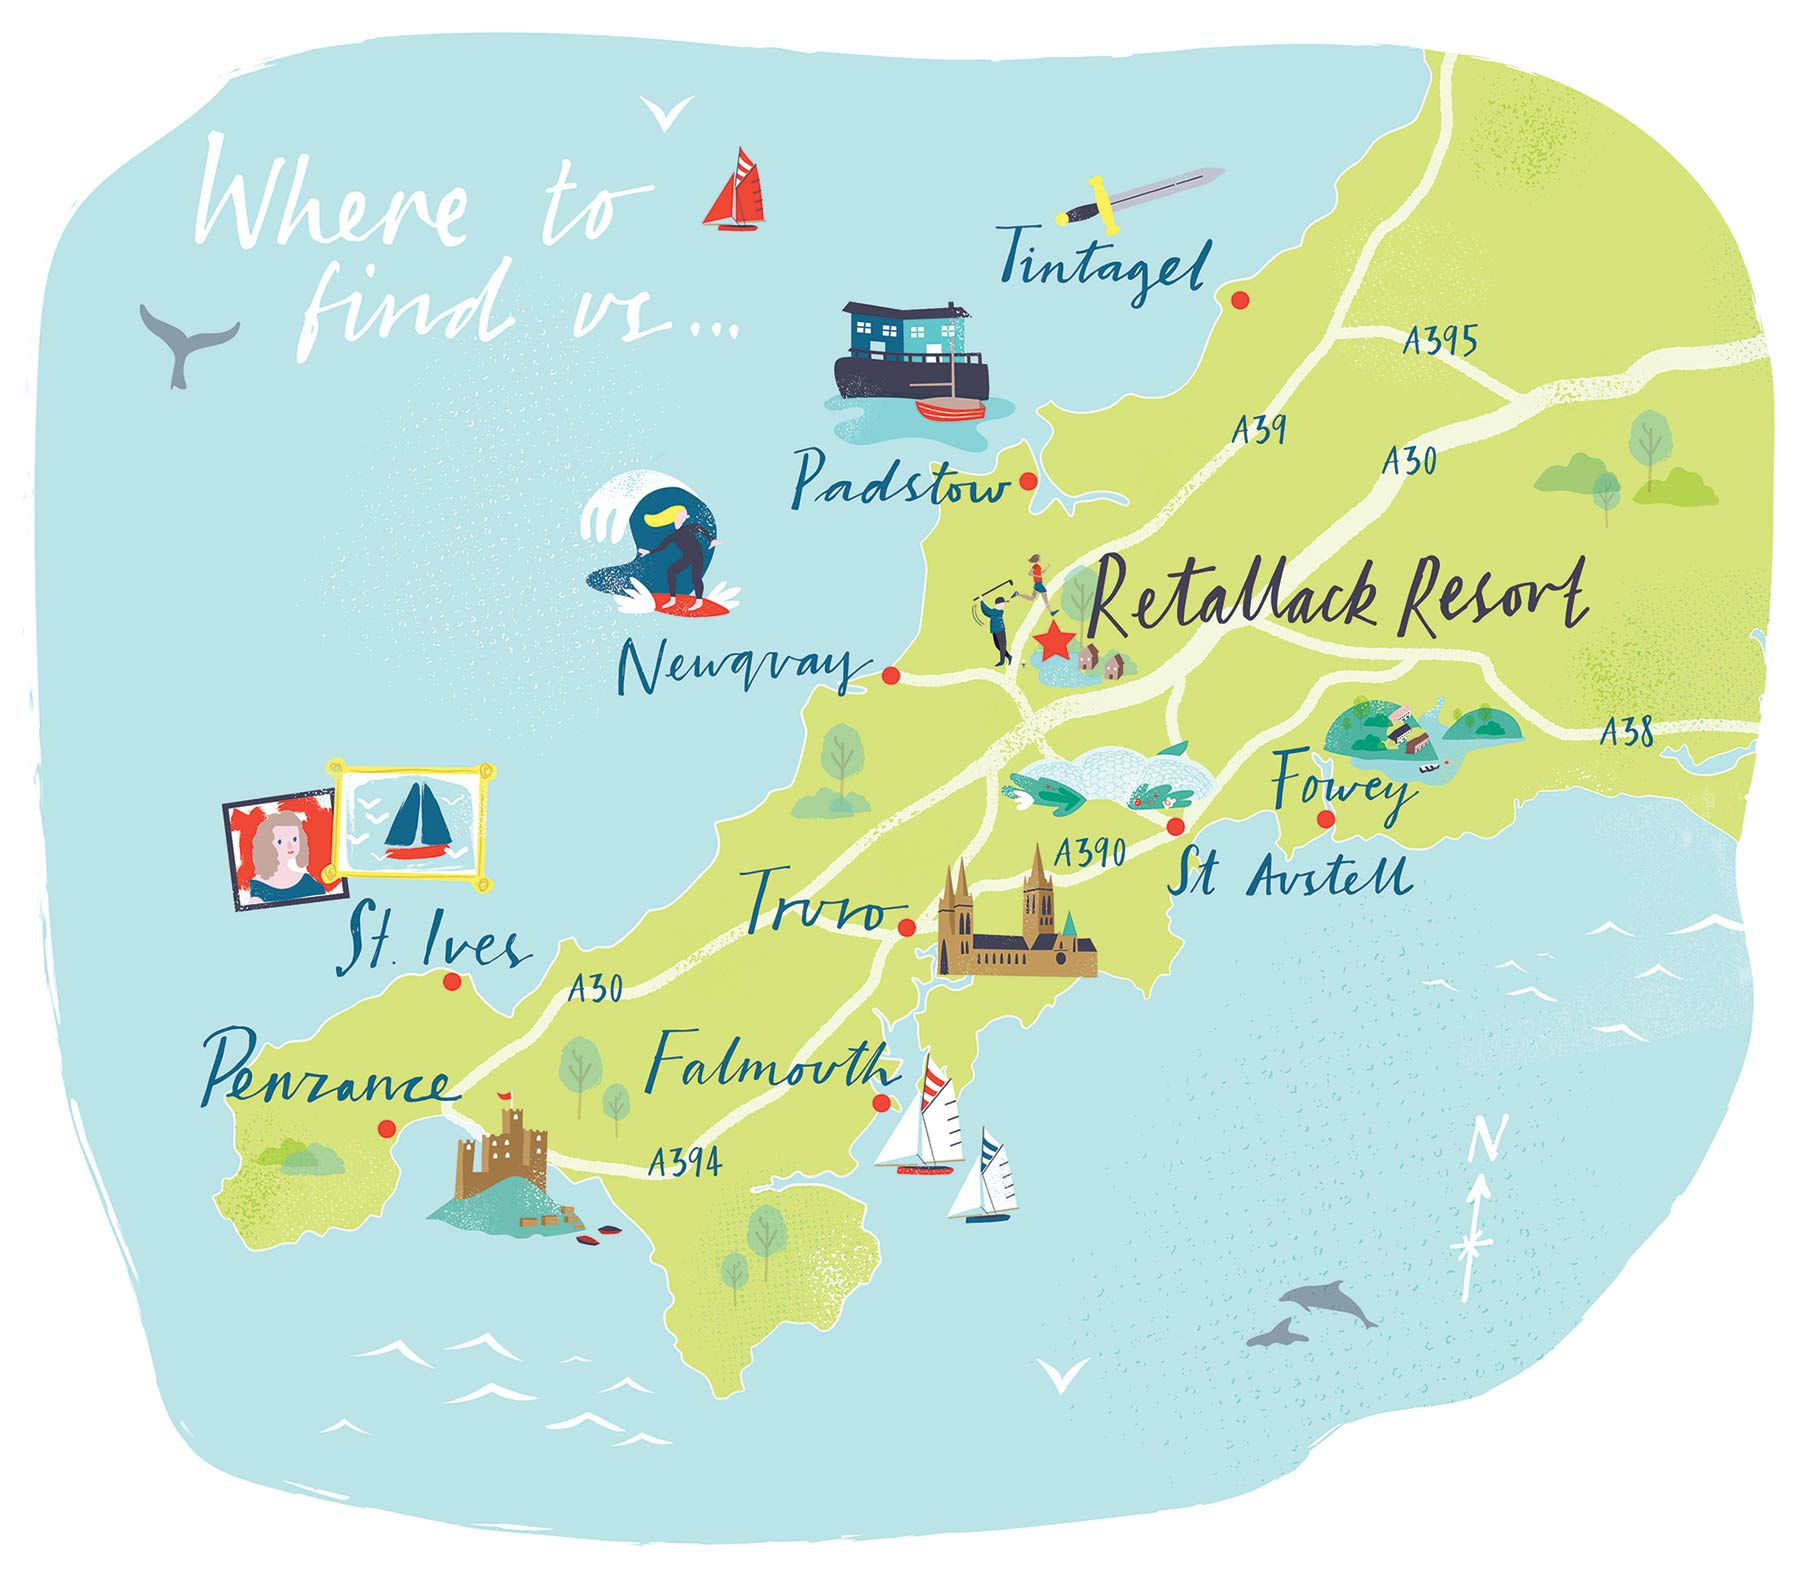 Illustrated Maps for a Premier Cornish Resort on